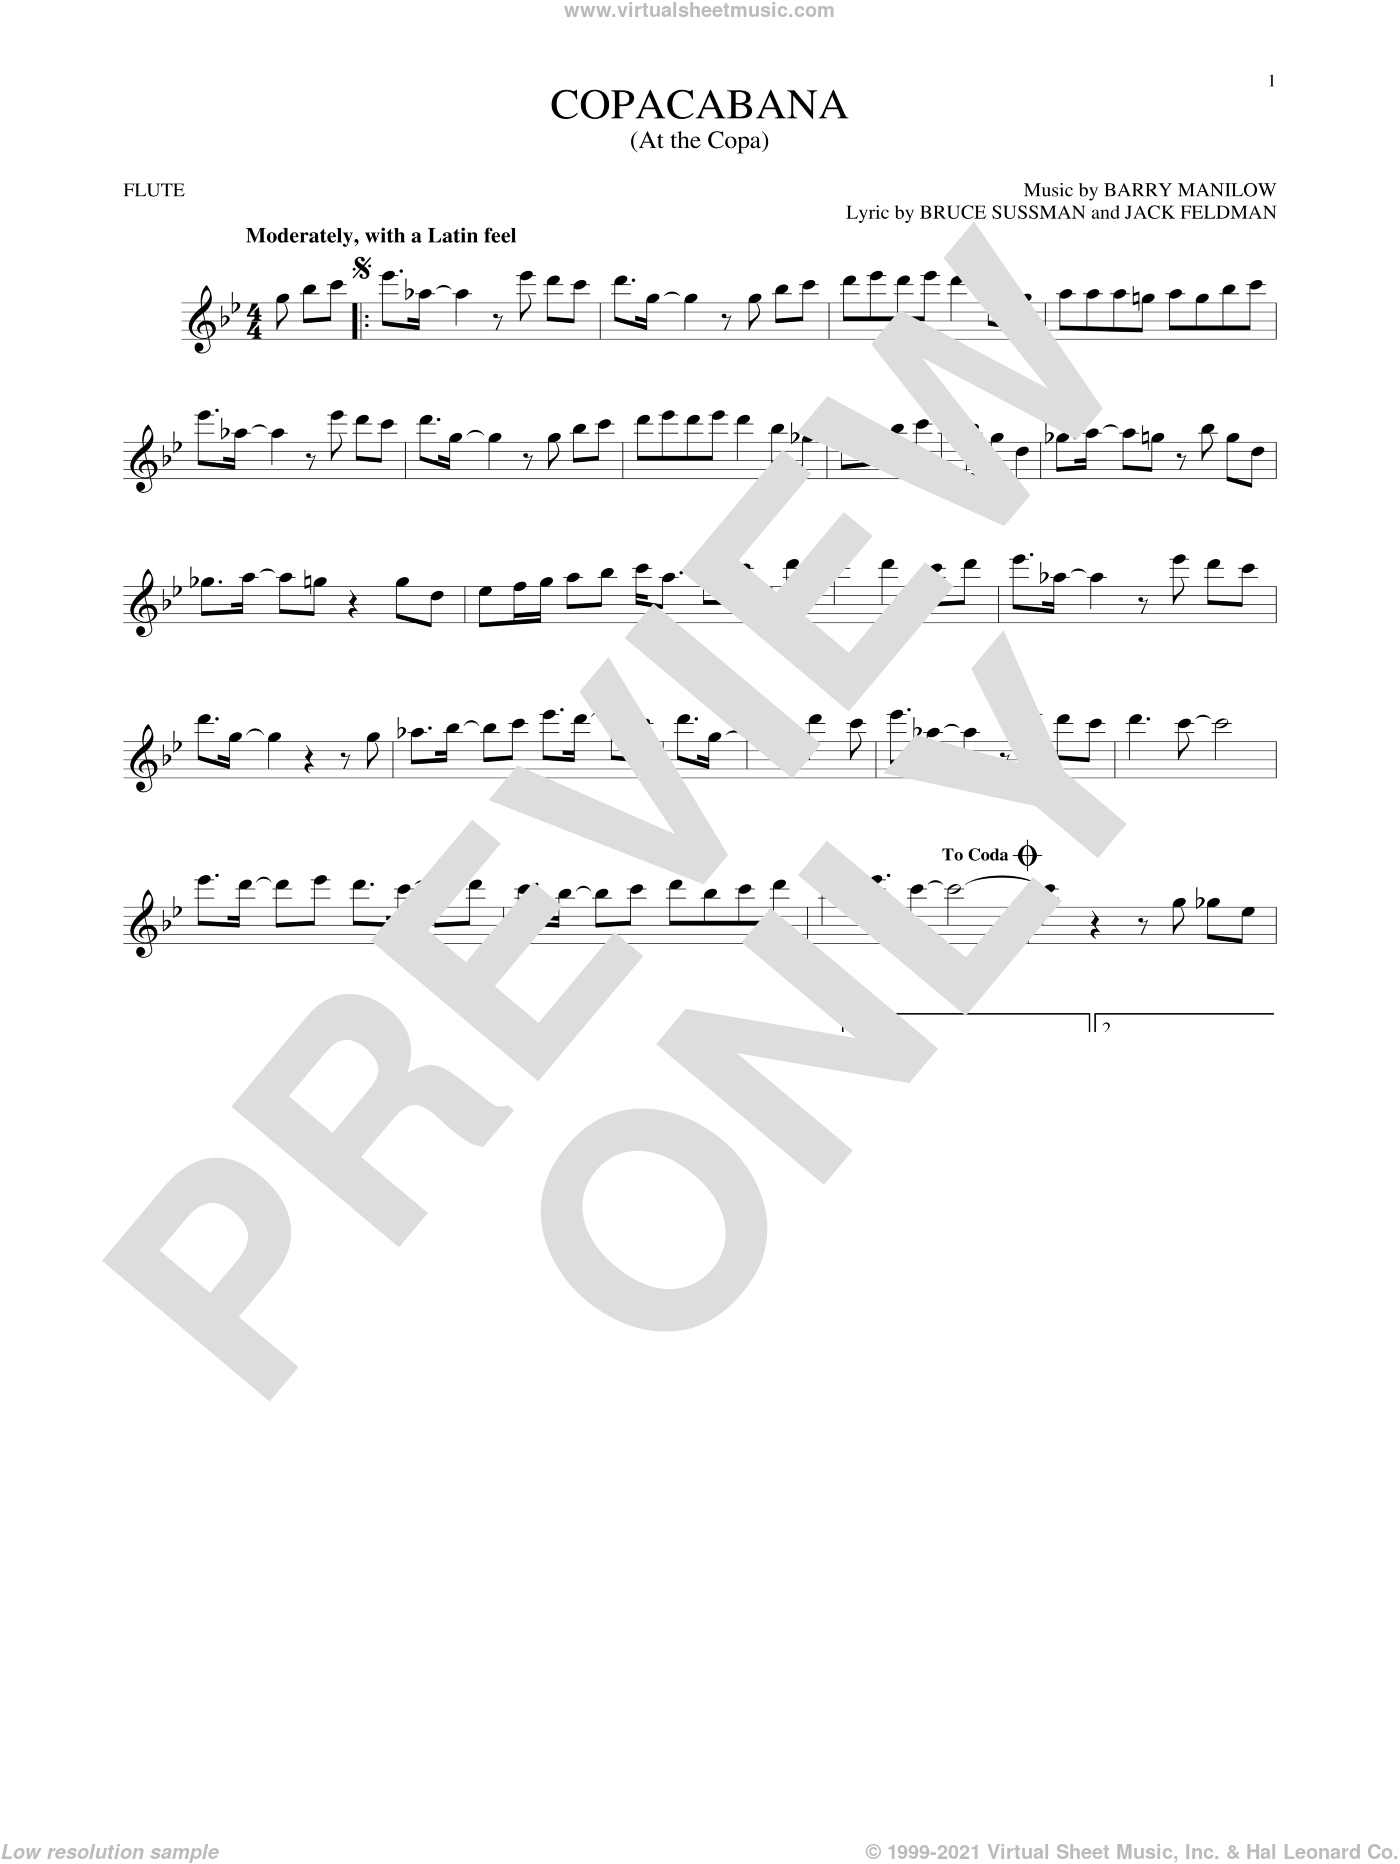 Copacabana (At The Copa) sheet music for flute solo by Barry Manilow, Bruce Sussman and Jack Feldman, intermediate skill level